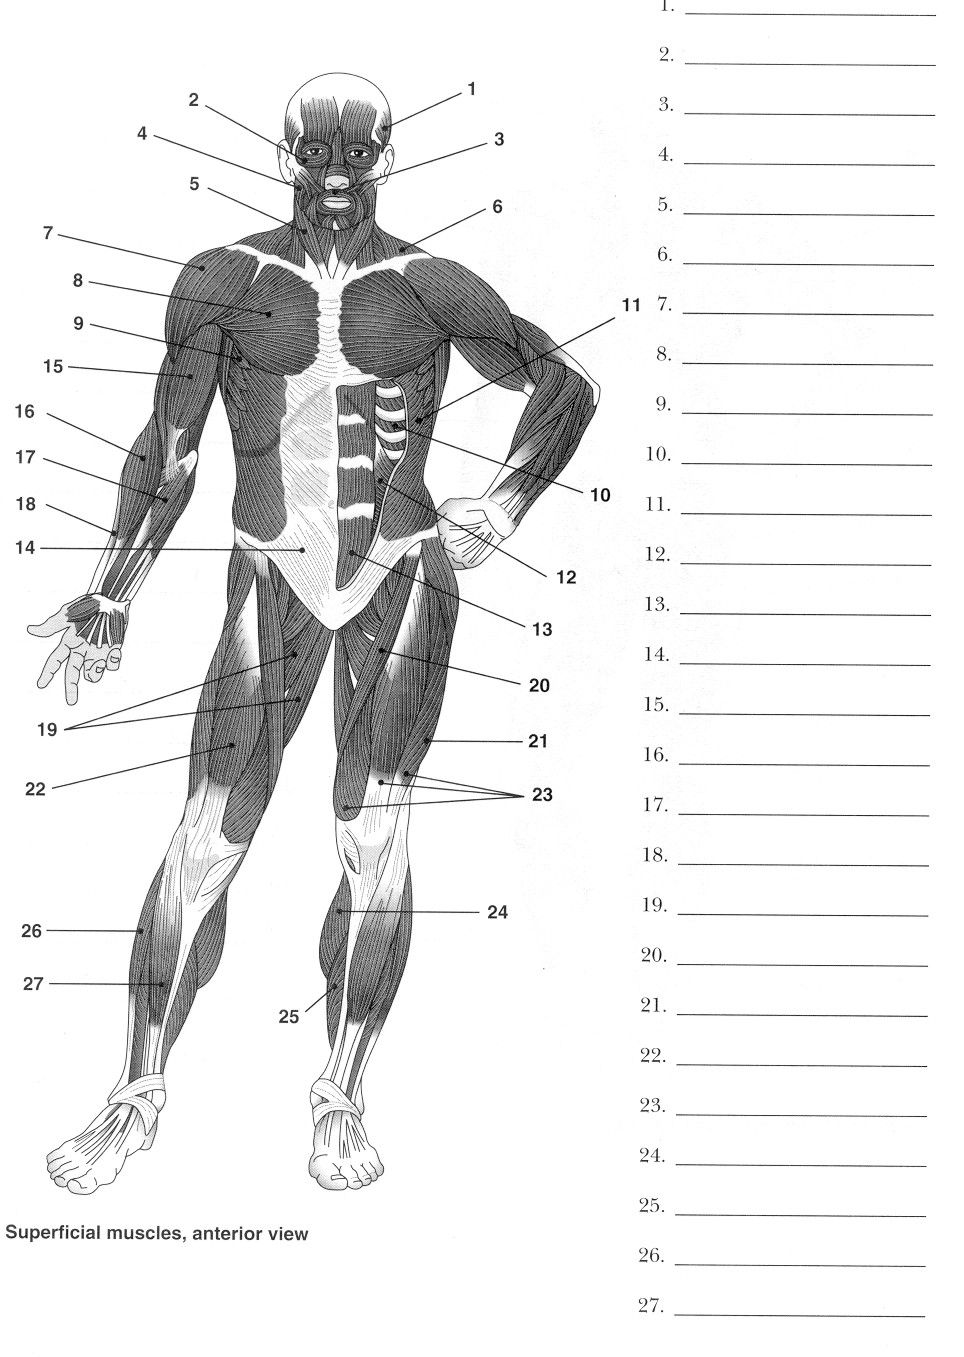 label muscles worksheet body muscles pinterest muscles worksheets and muscle anatomy. Black Bedroom Furniture Sets. Home Design Ideas